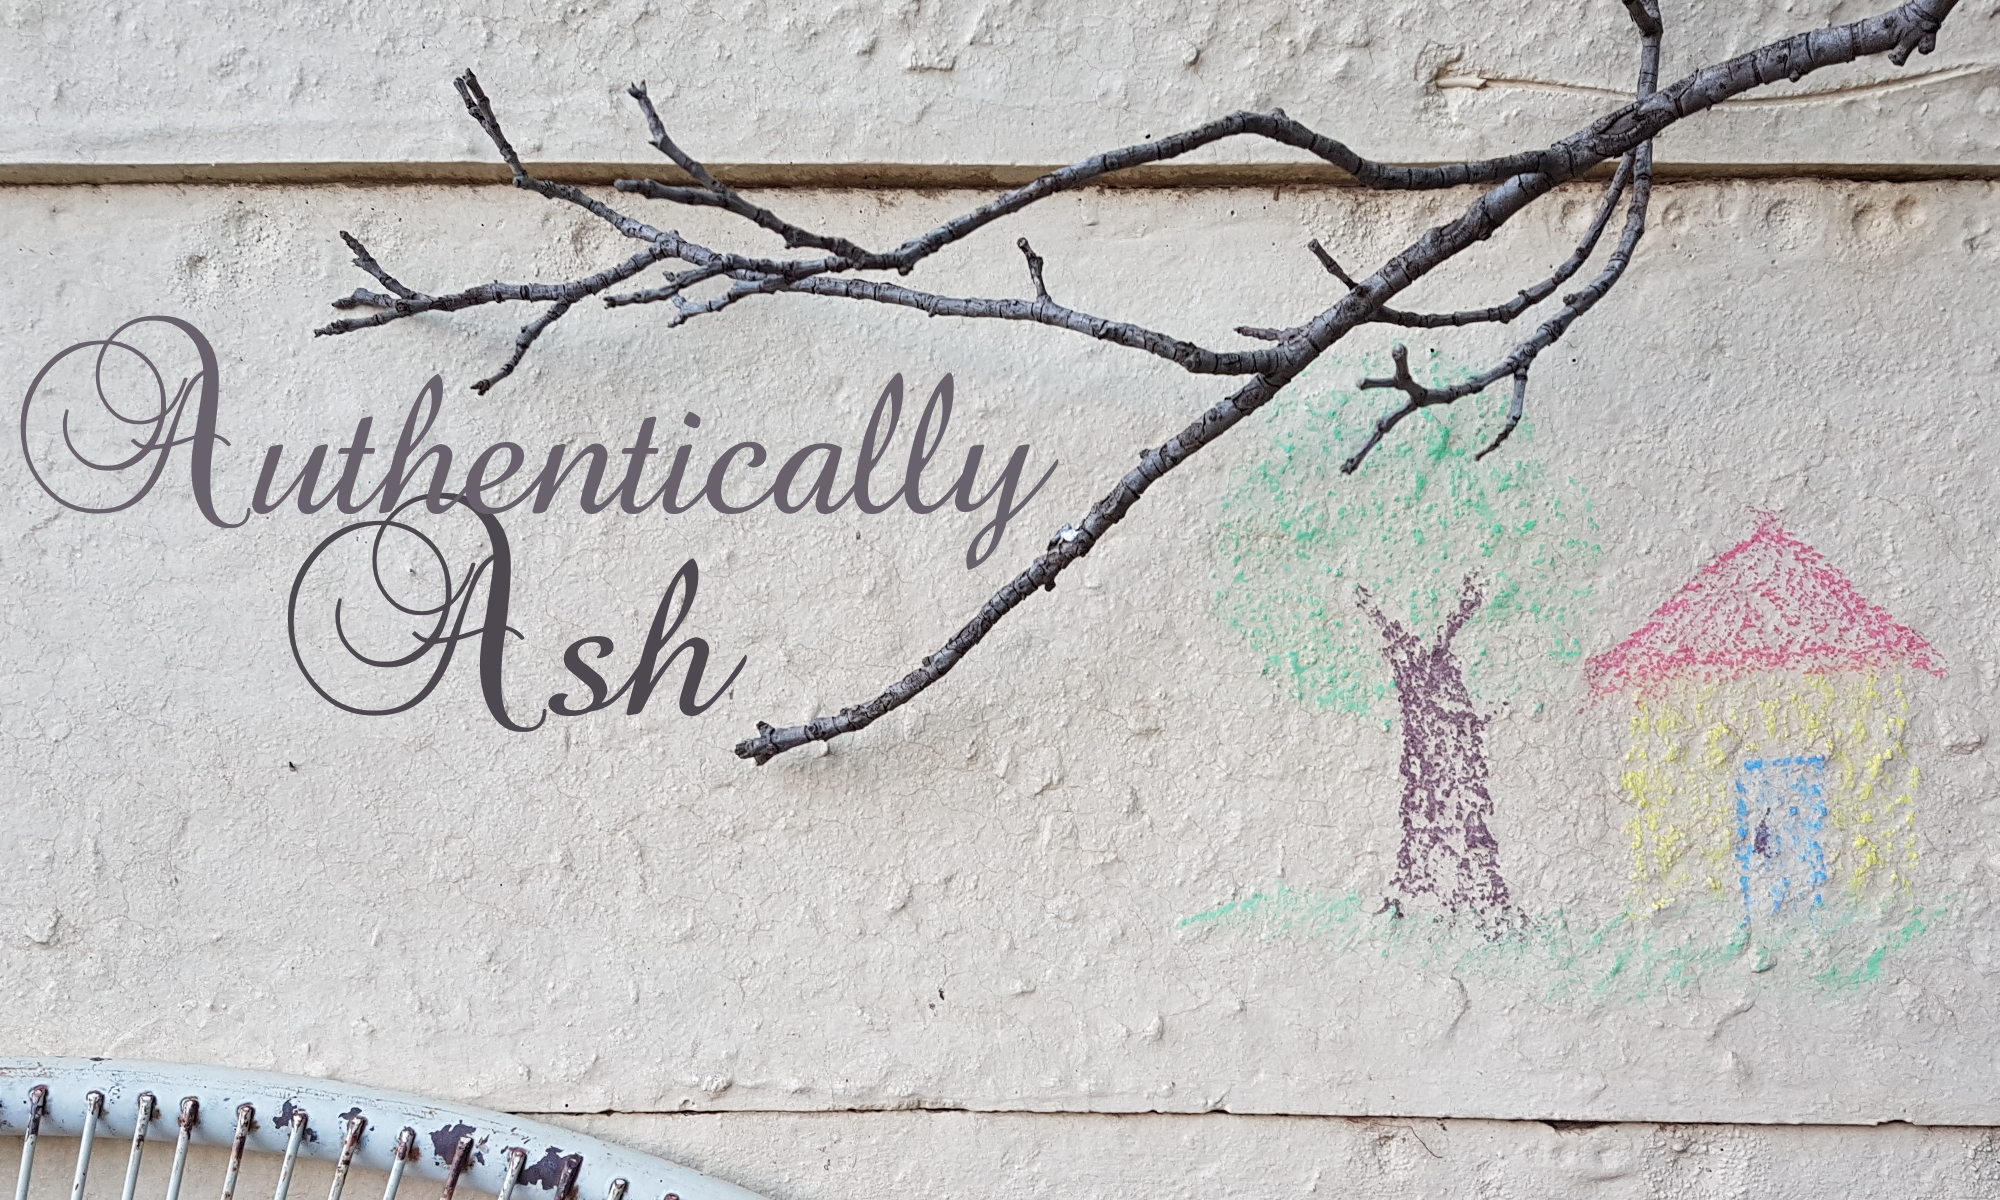 Authentically Ash